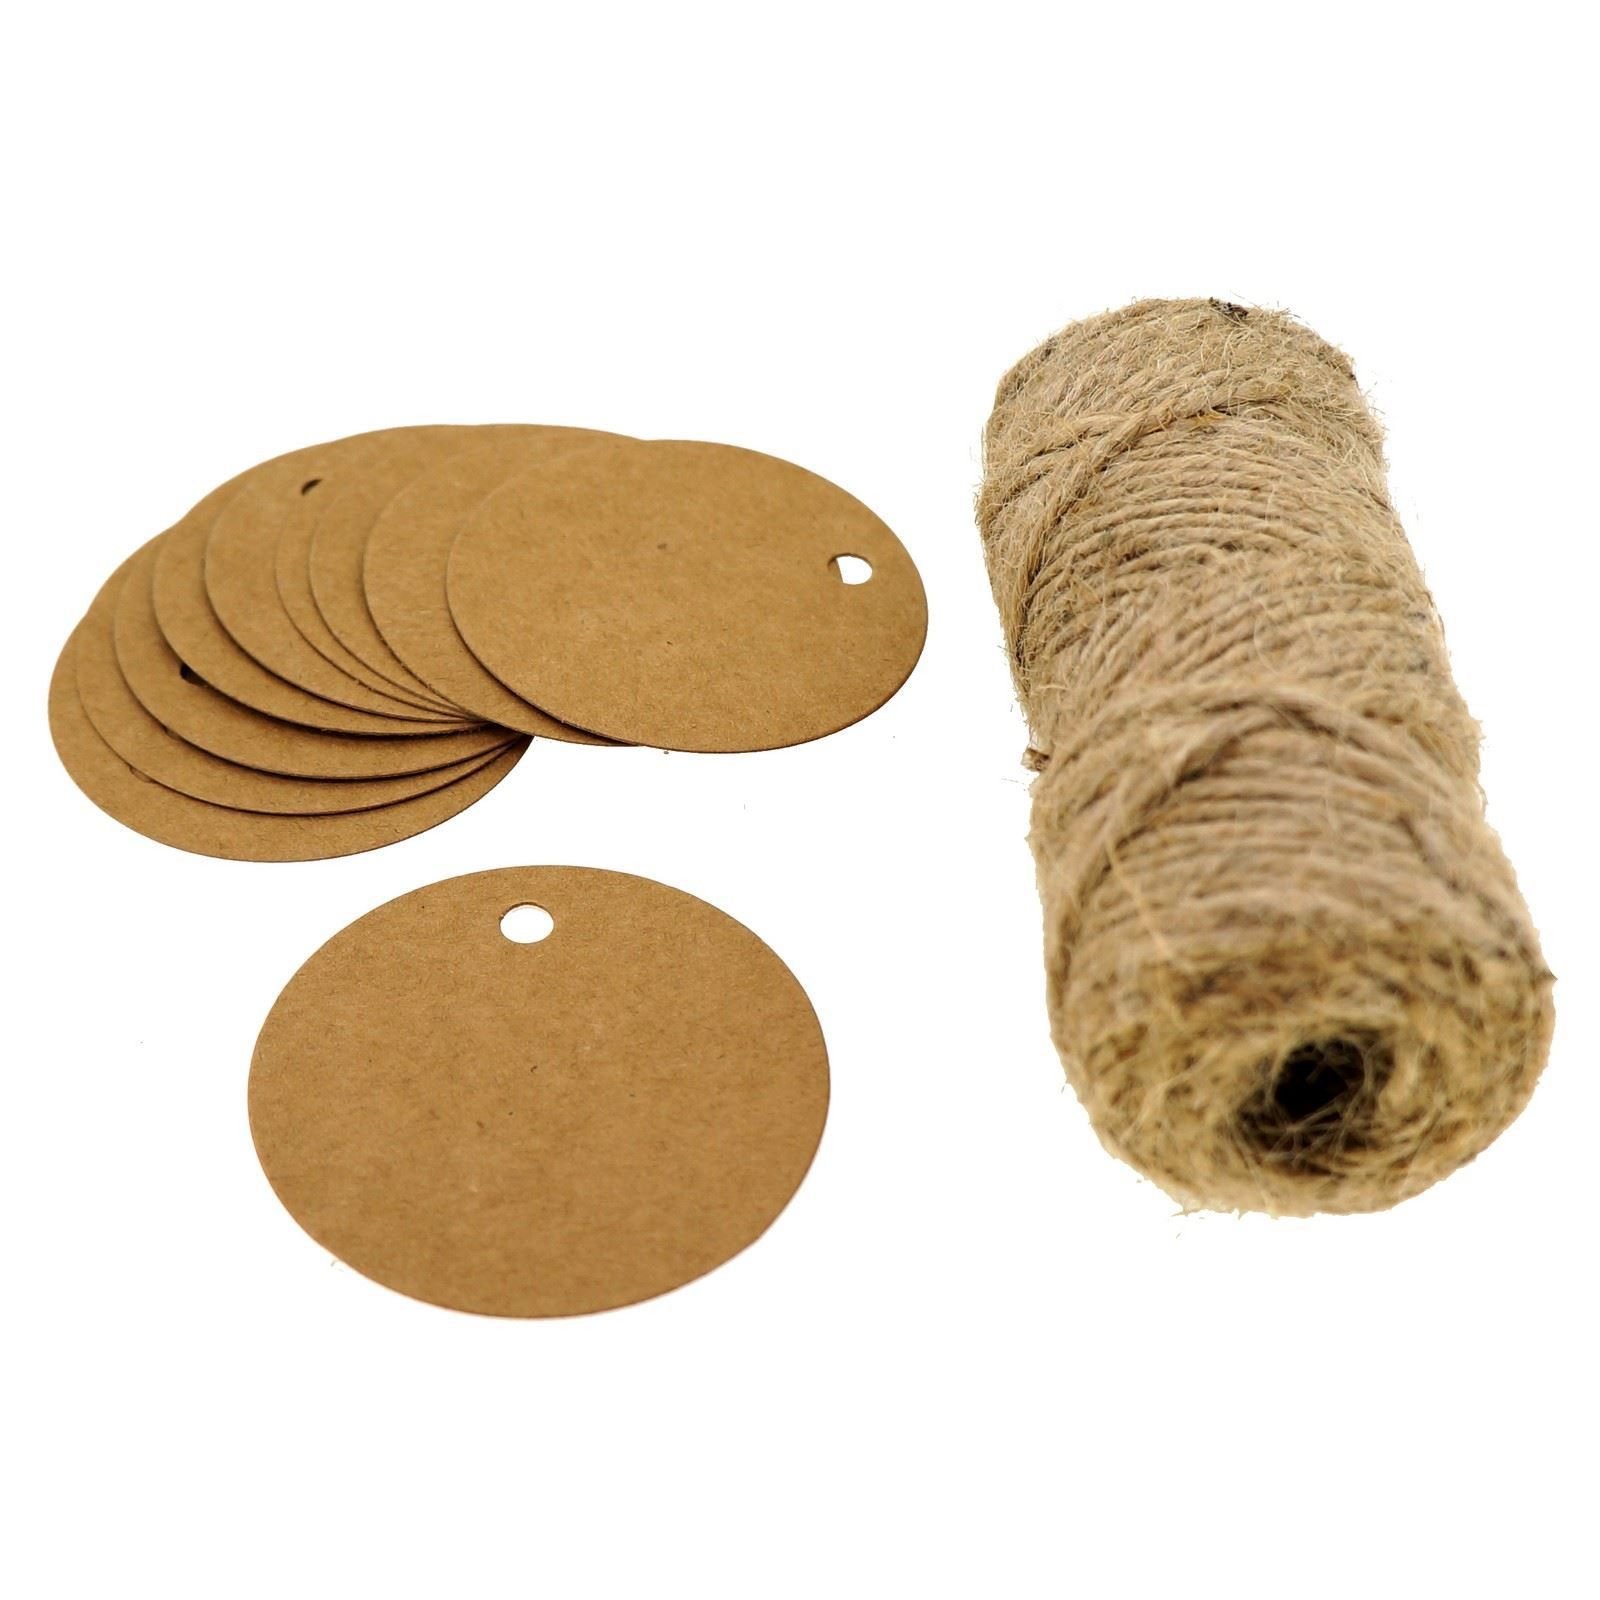 Round kraft paper gift price tags with jute twine for gift round kraft paper gift price tags with jute twine for gift wrapping packaging set jeuxipadfo Choice Image